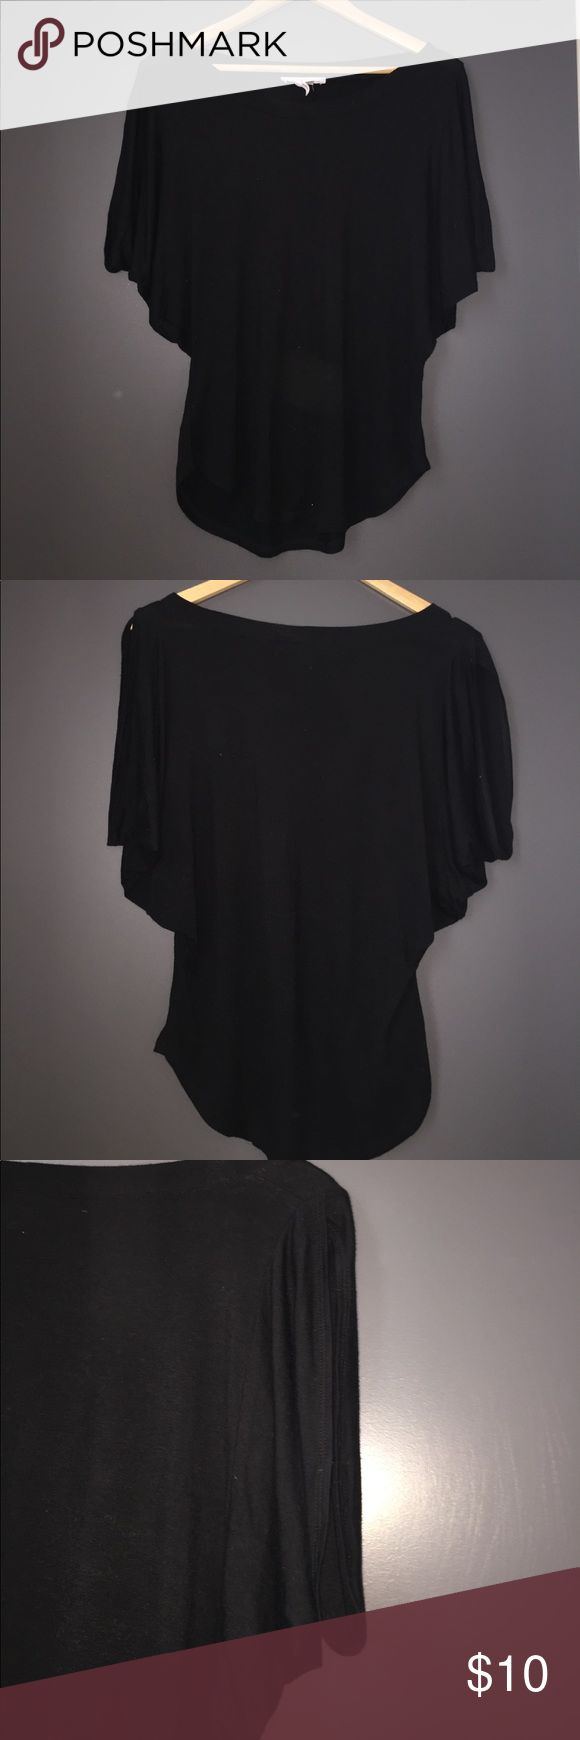 Cute, fun BCBG generation black top Like new! BCBGeneration top. Scoops at hem. Butterfly like sleeves Great for pairing with jeans and heels for a fun night out. Size small. BCBGeneration Tops